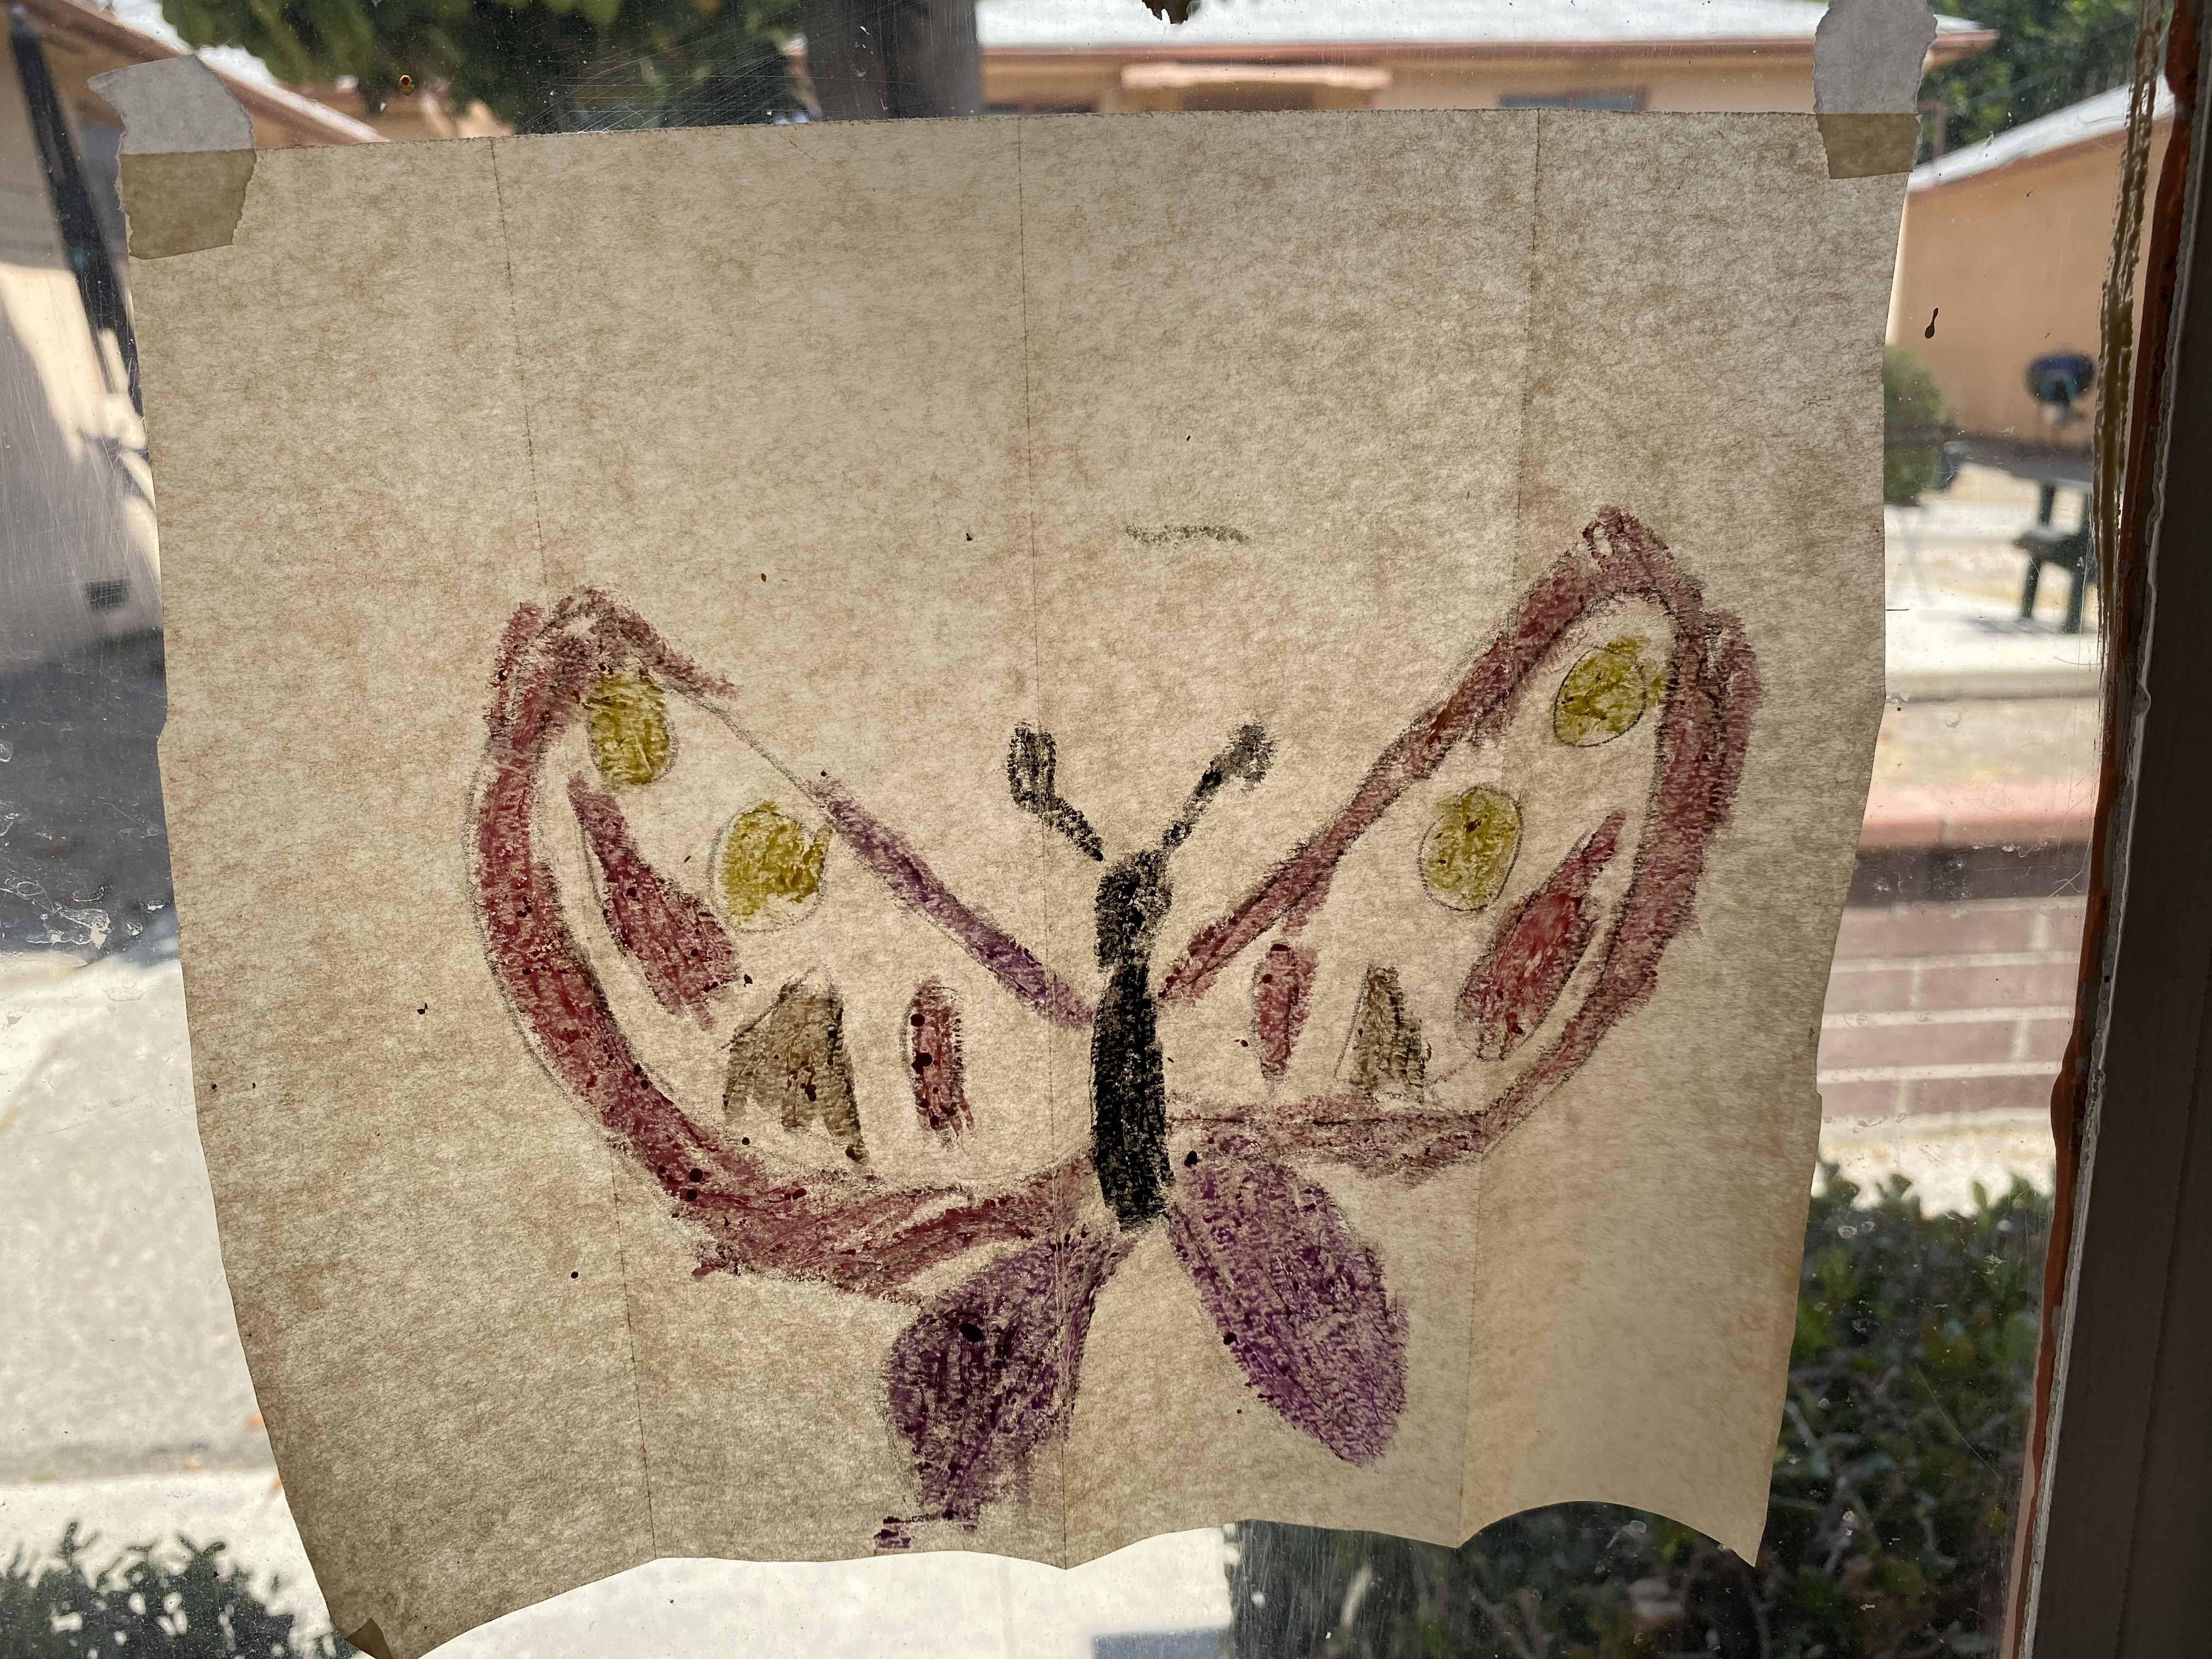 This butterfly was made for my birthday by my 5-year-old grandnephew Sigmund. He mailed it to me.